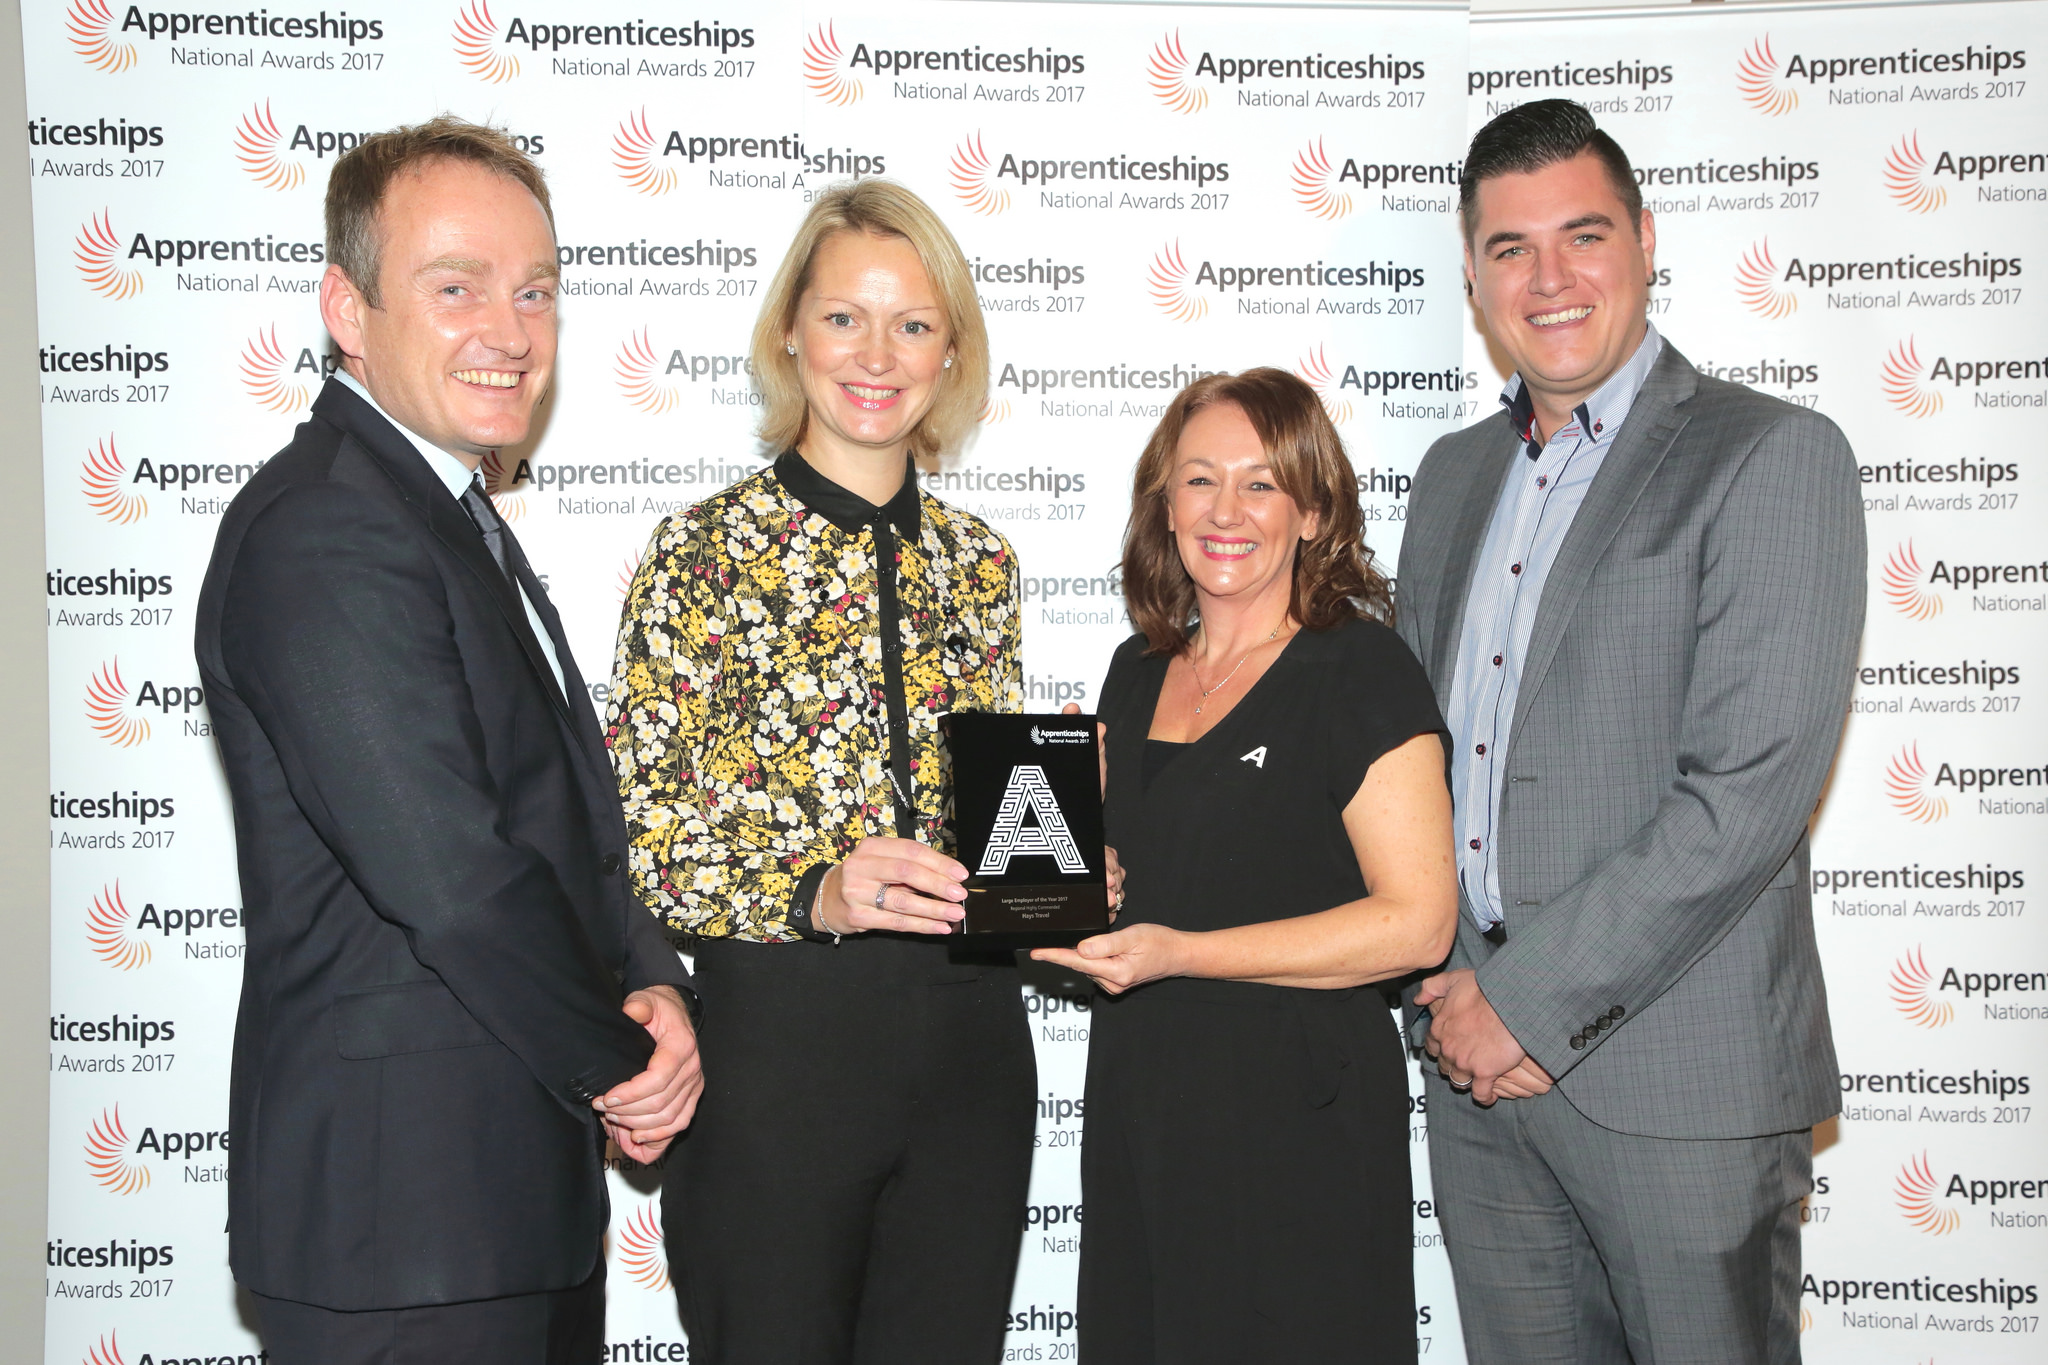 Hays Travel scoops top slot for apprenticeships